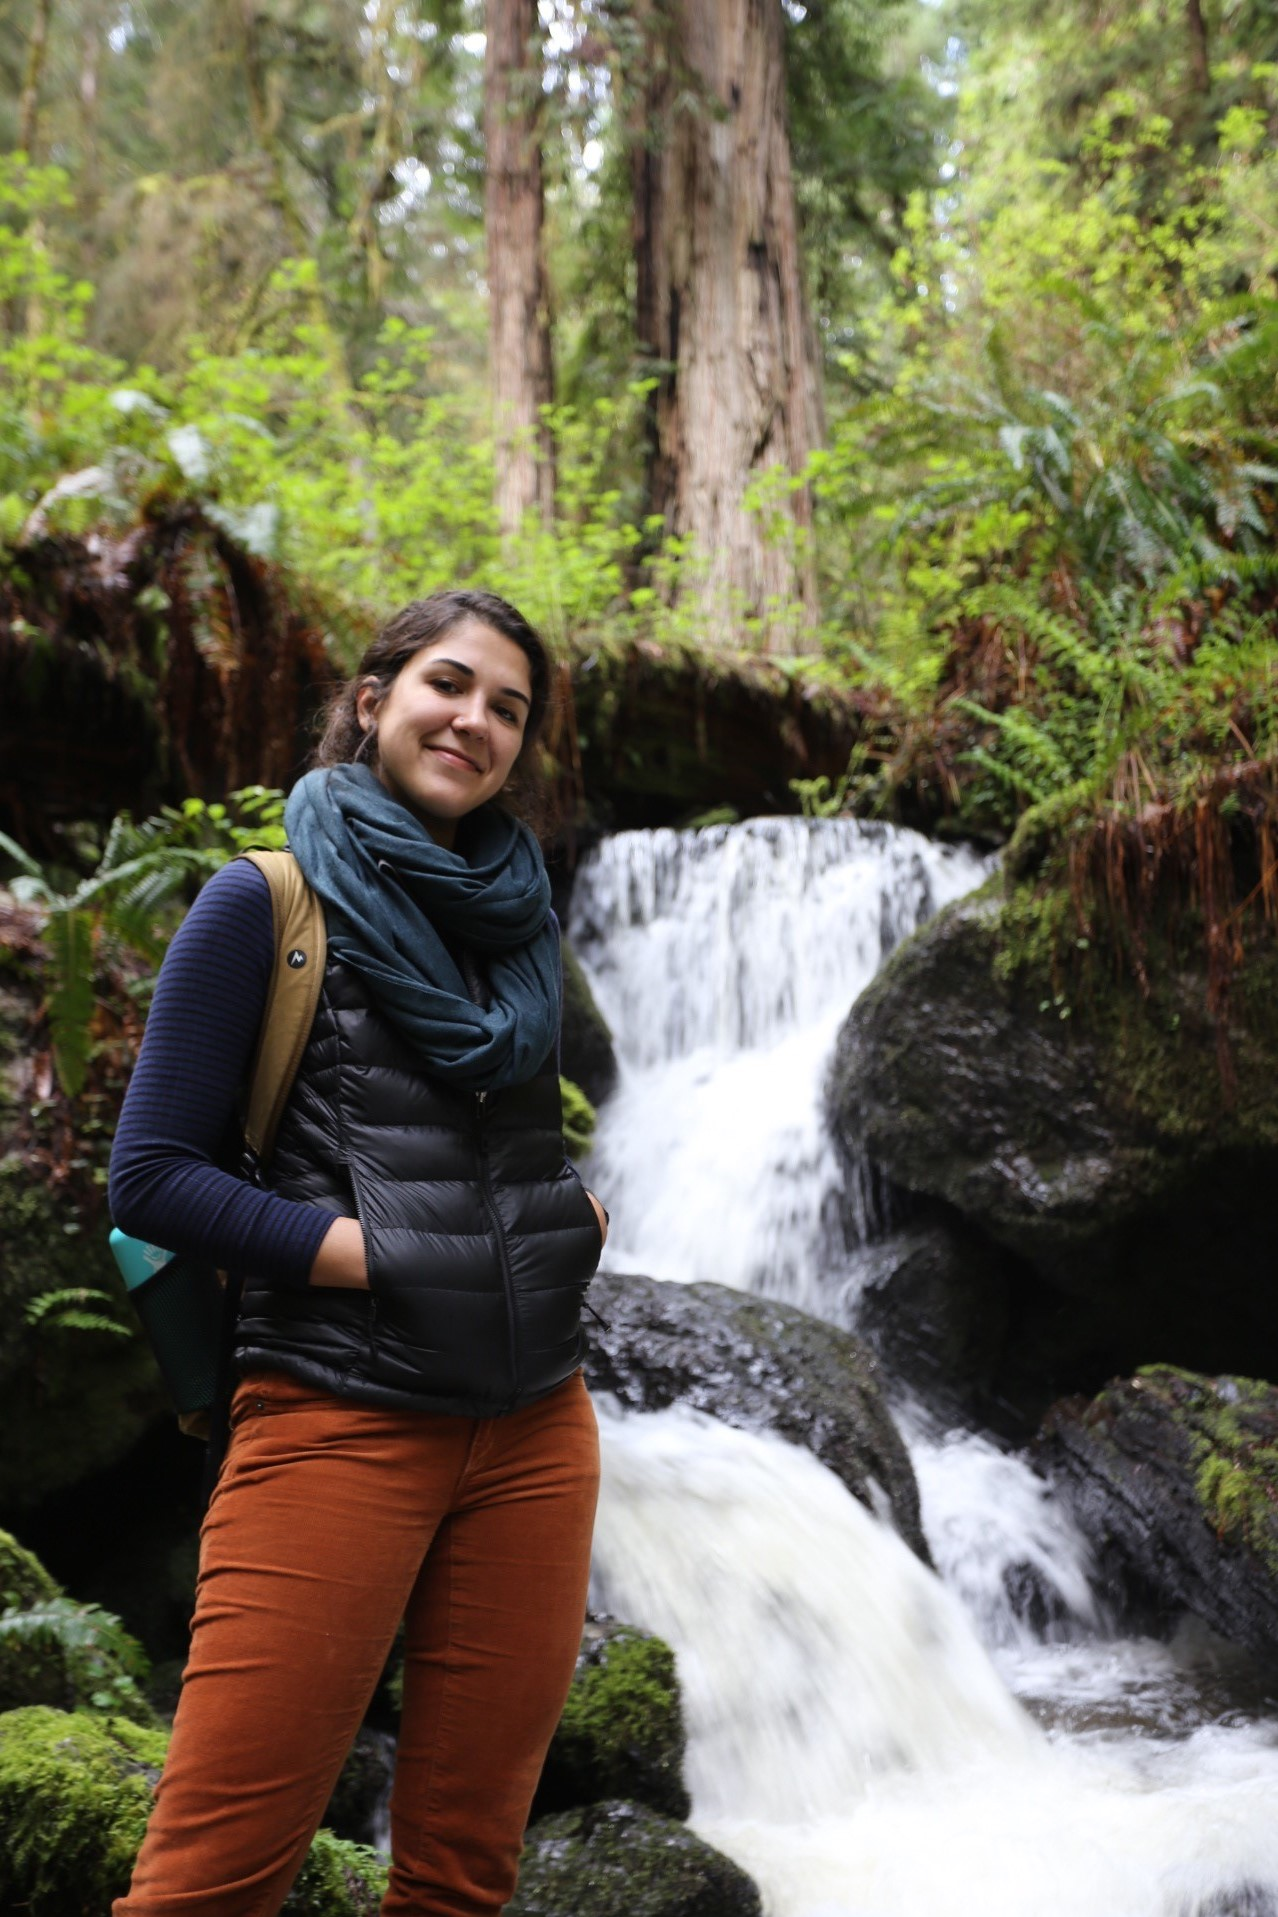 Jasmin at the Trillium Falls near the Redwood National and State Parks in Humboldt County